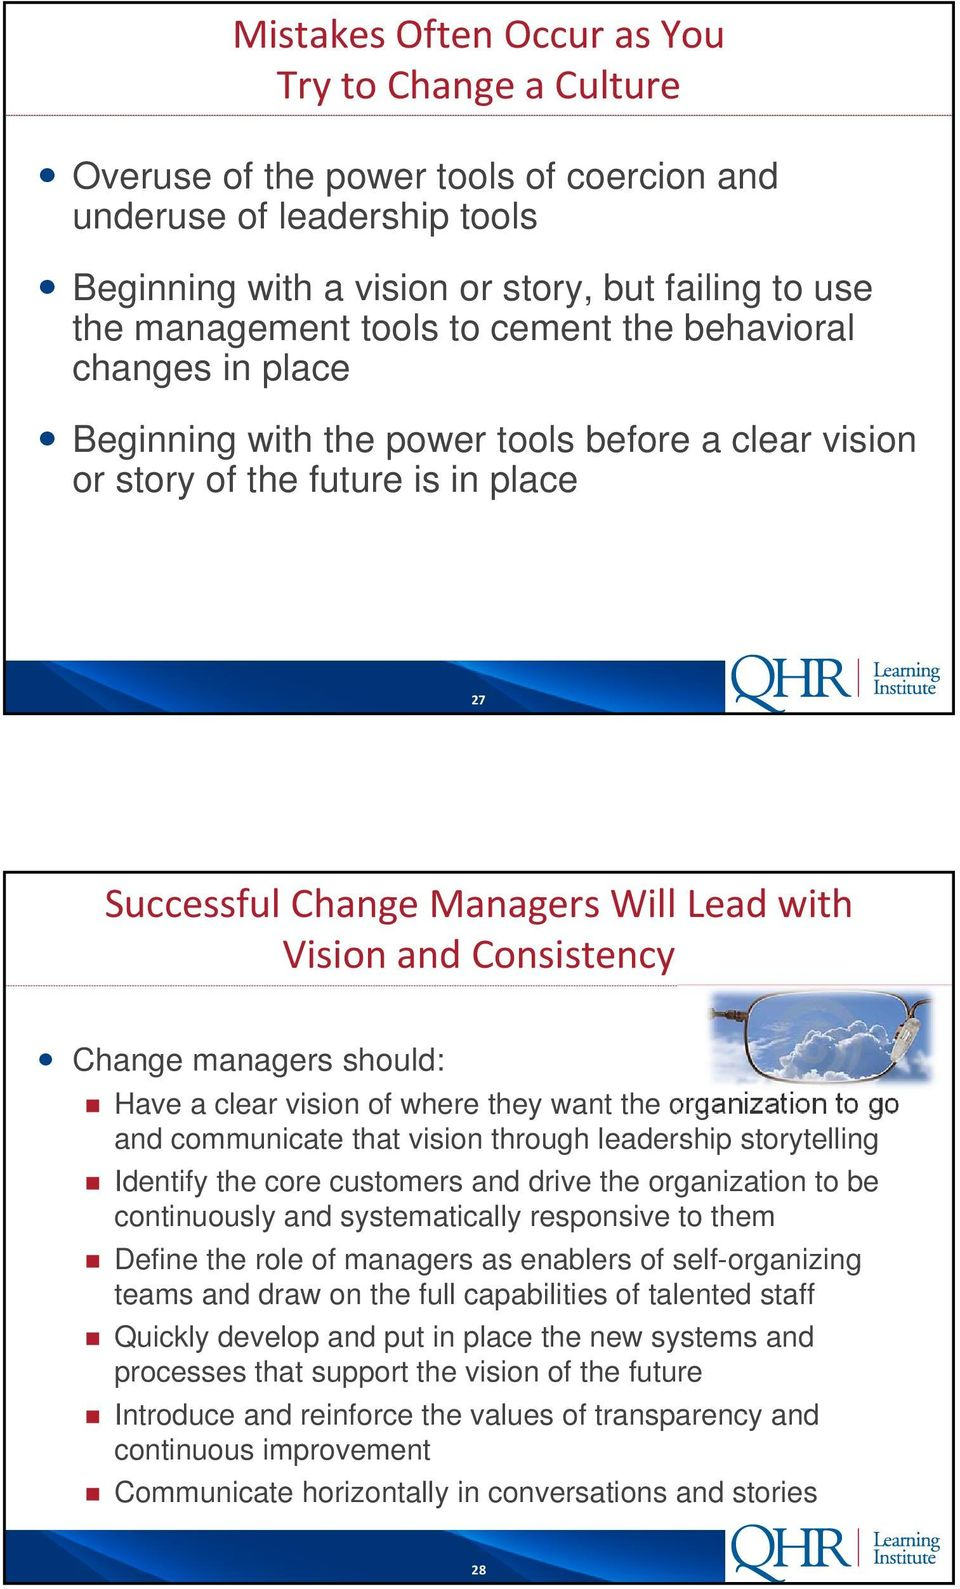 Change managers should: Have a clear vision of where they want the organization to go and communicate that vision through leadership storytelling Identify the core customers and drive the